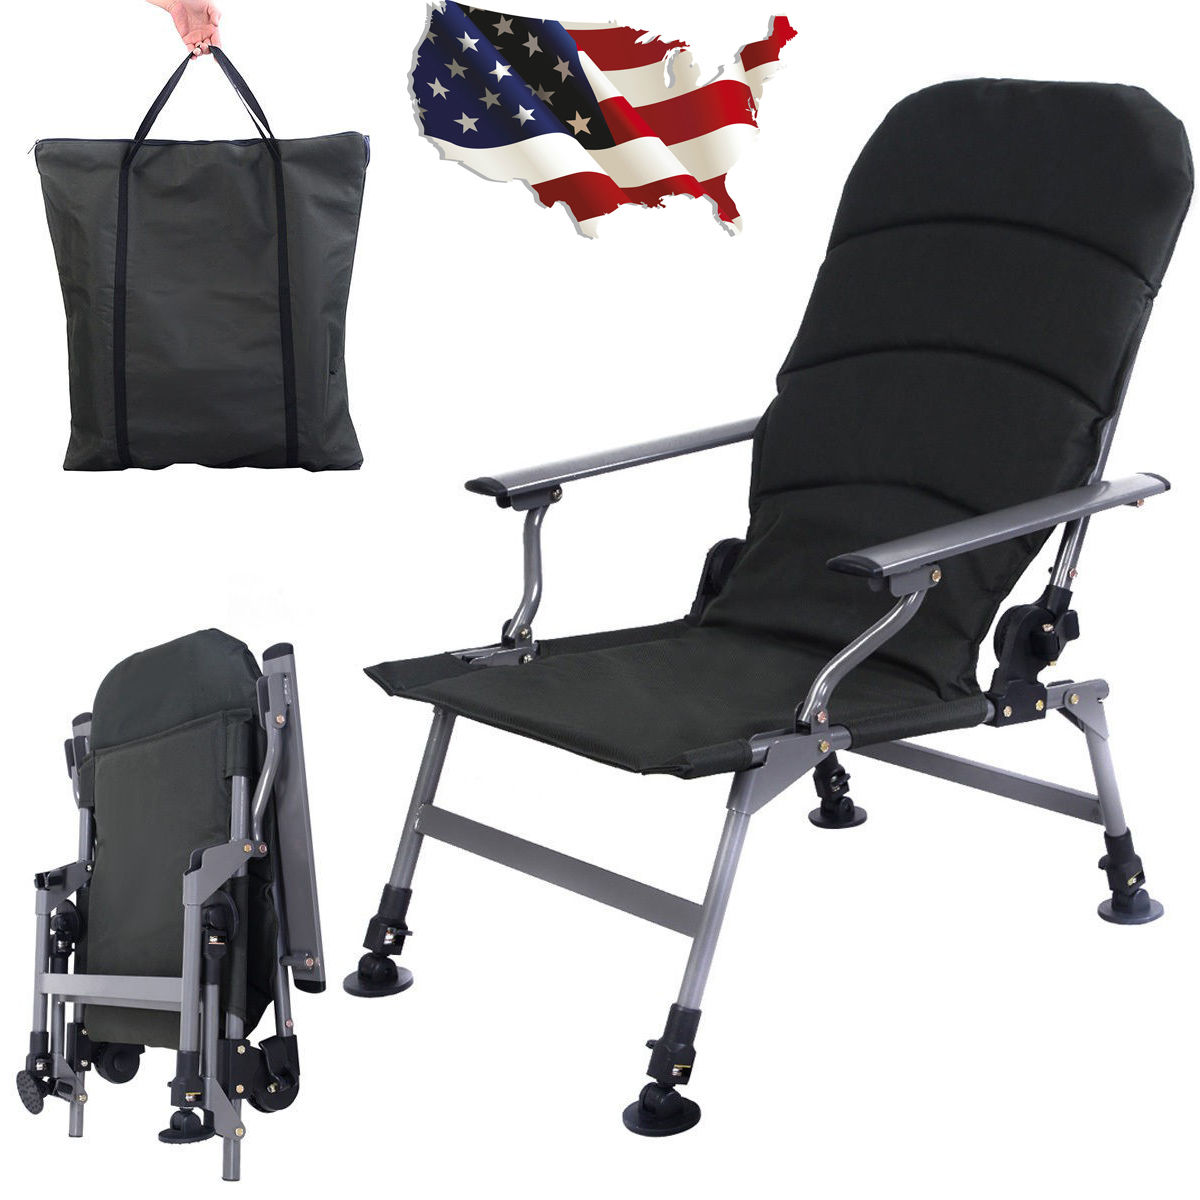 green fishing chair clear dining protectors portable folding adjustable camping outdoor w carry bag army